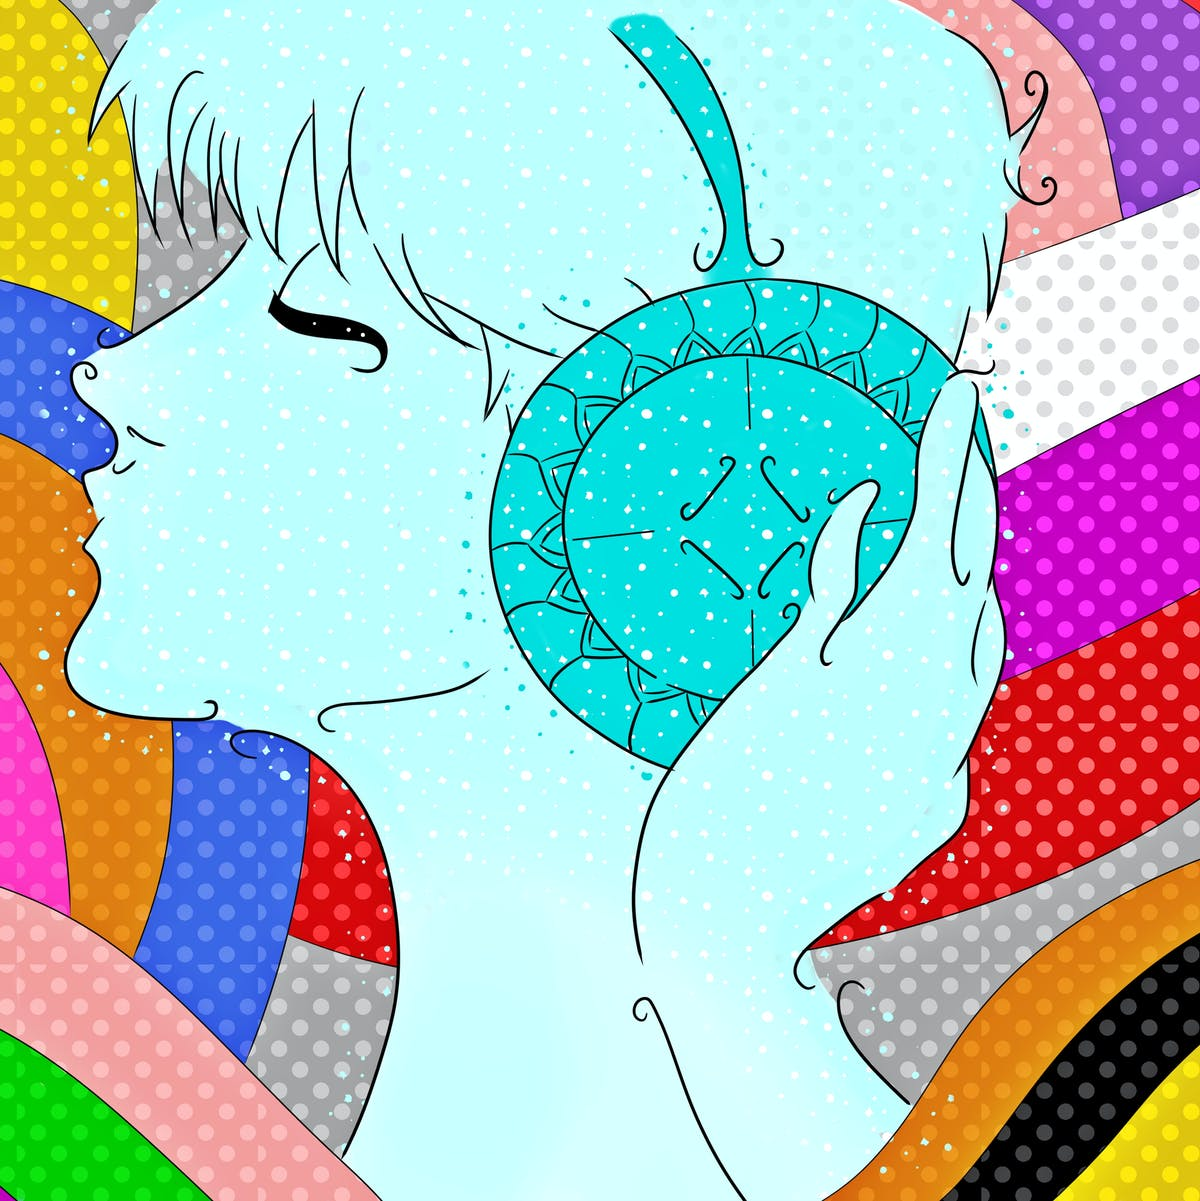 Spotify Wrapped: What your favorite music says about your personality